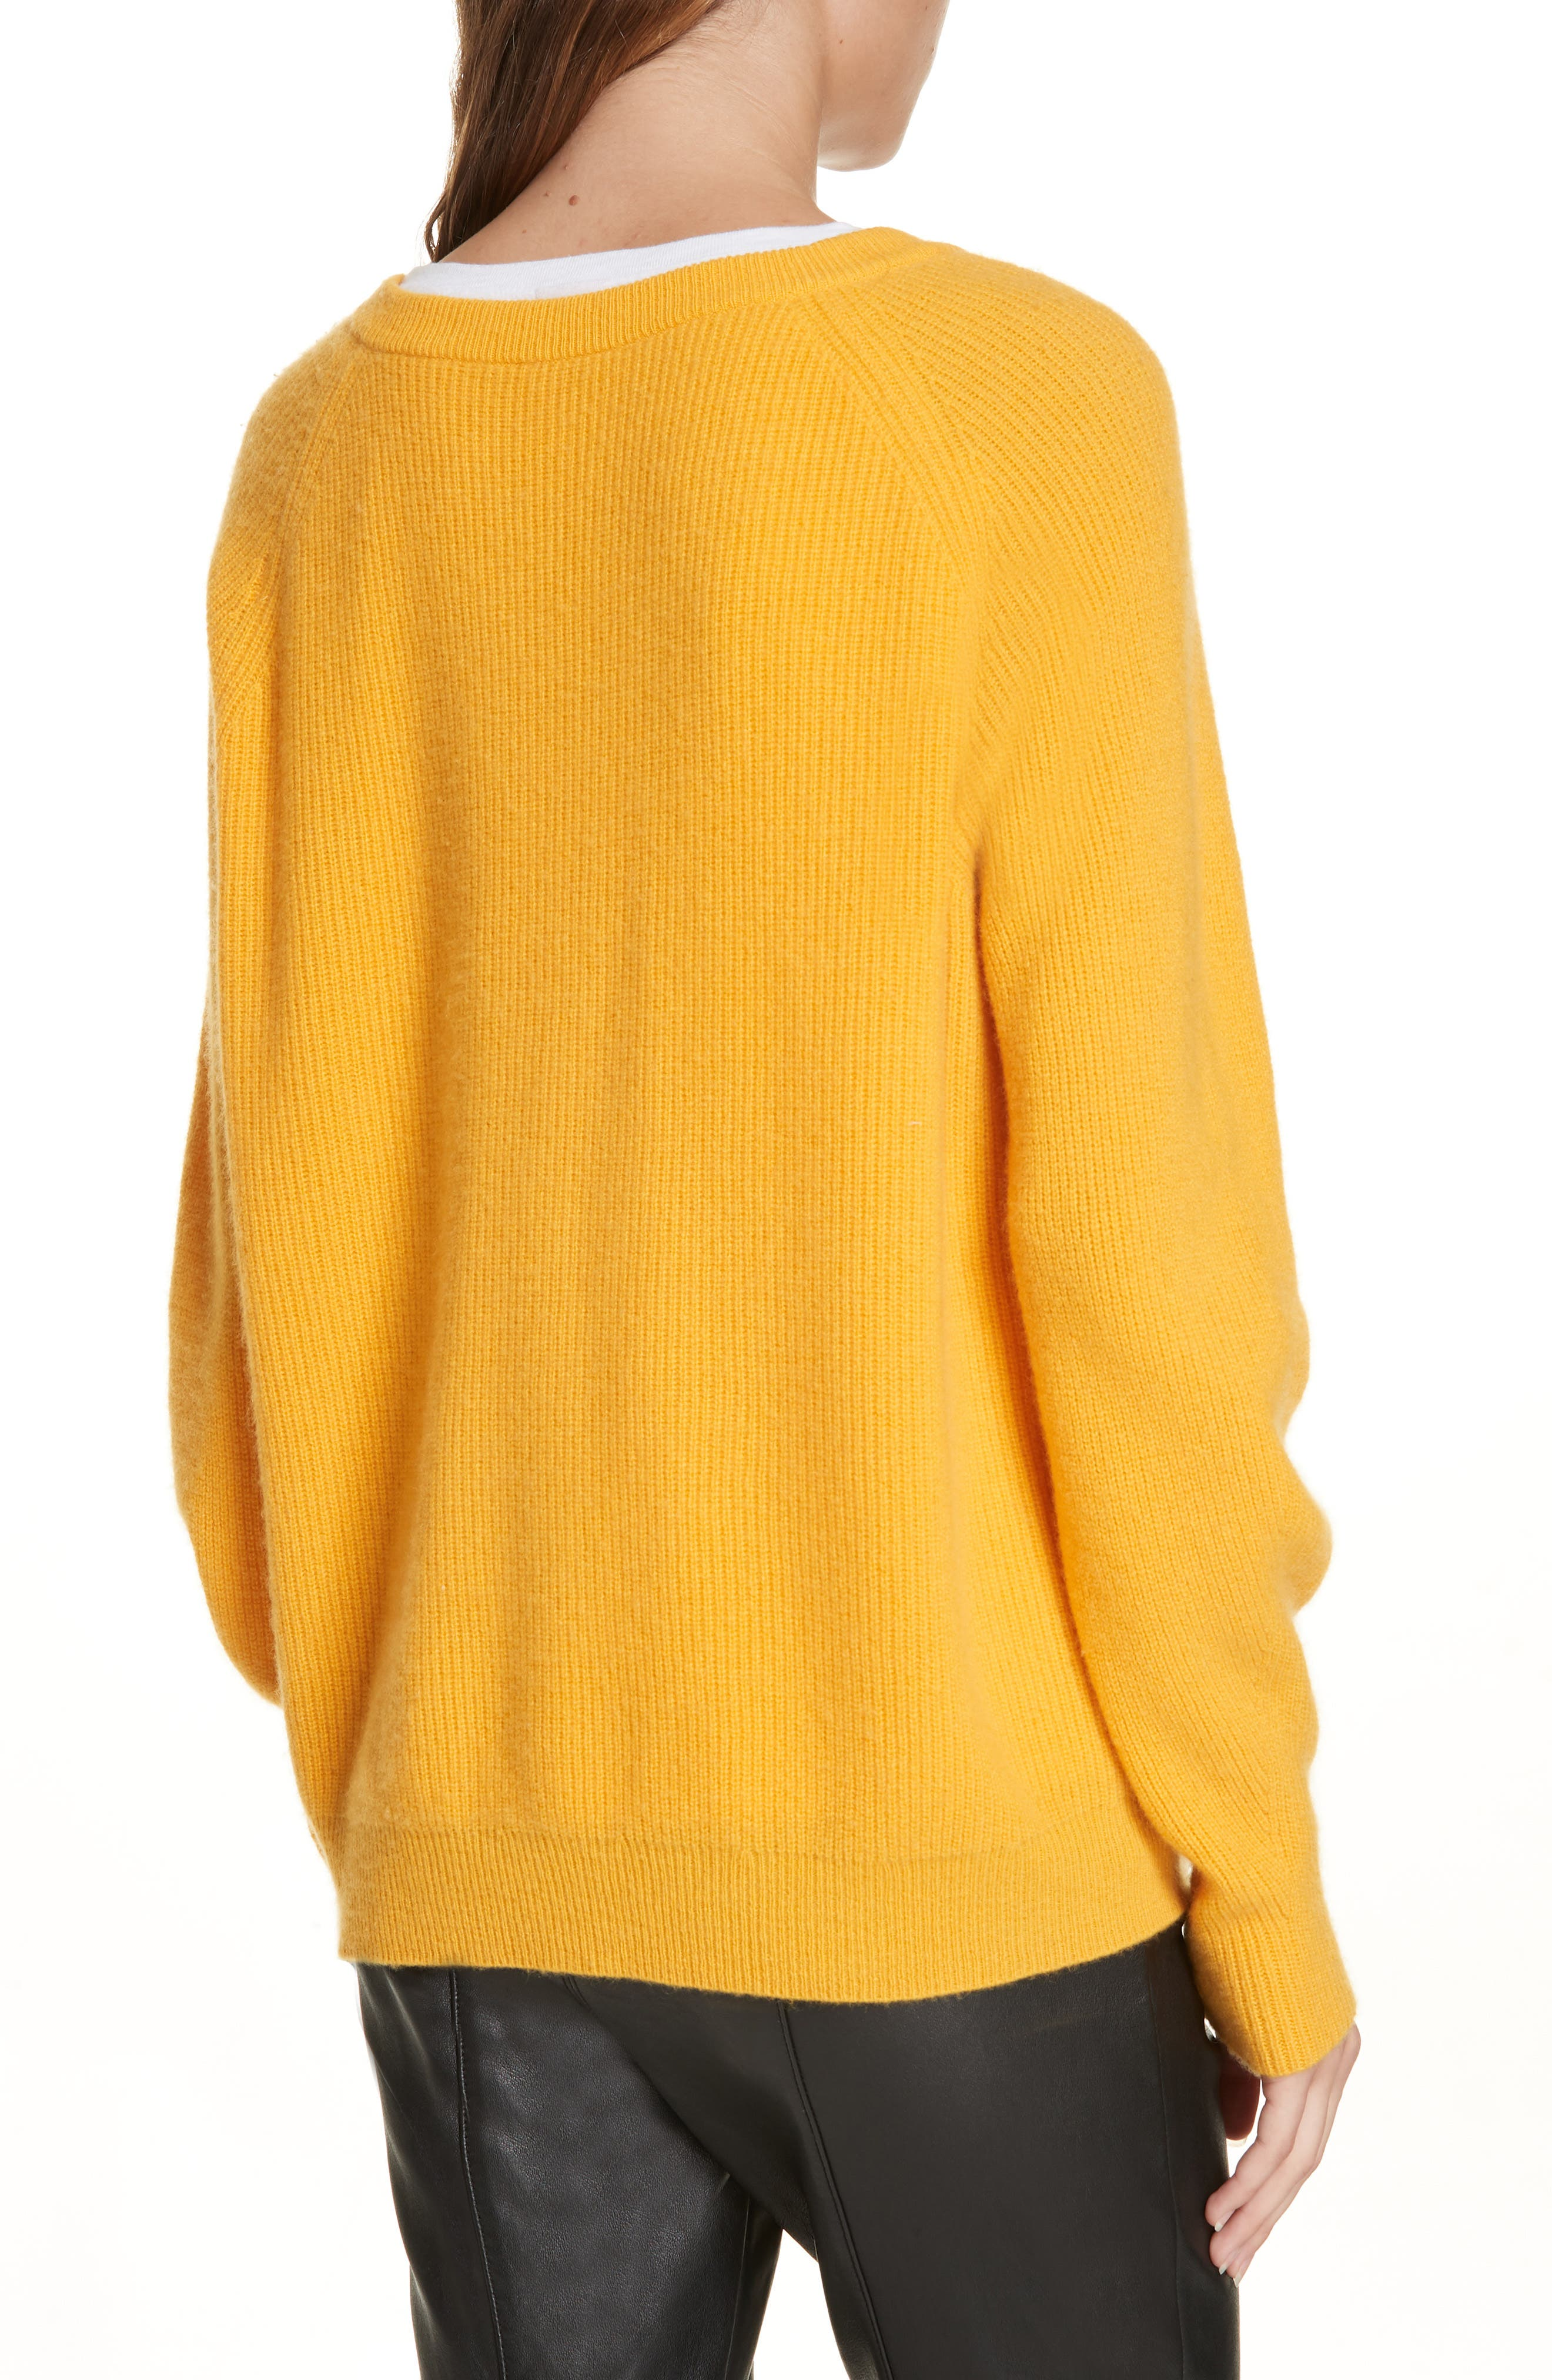 Neely Cashmere Sweater,                             Alternate thumbnail 2, color,                             724